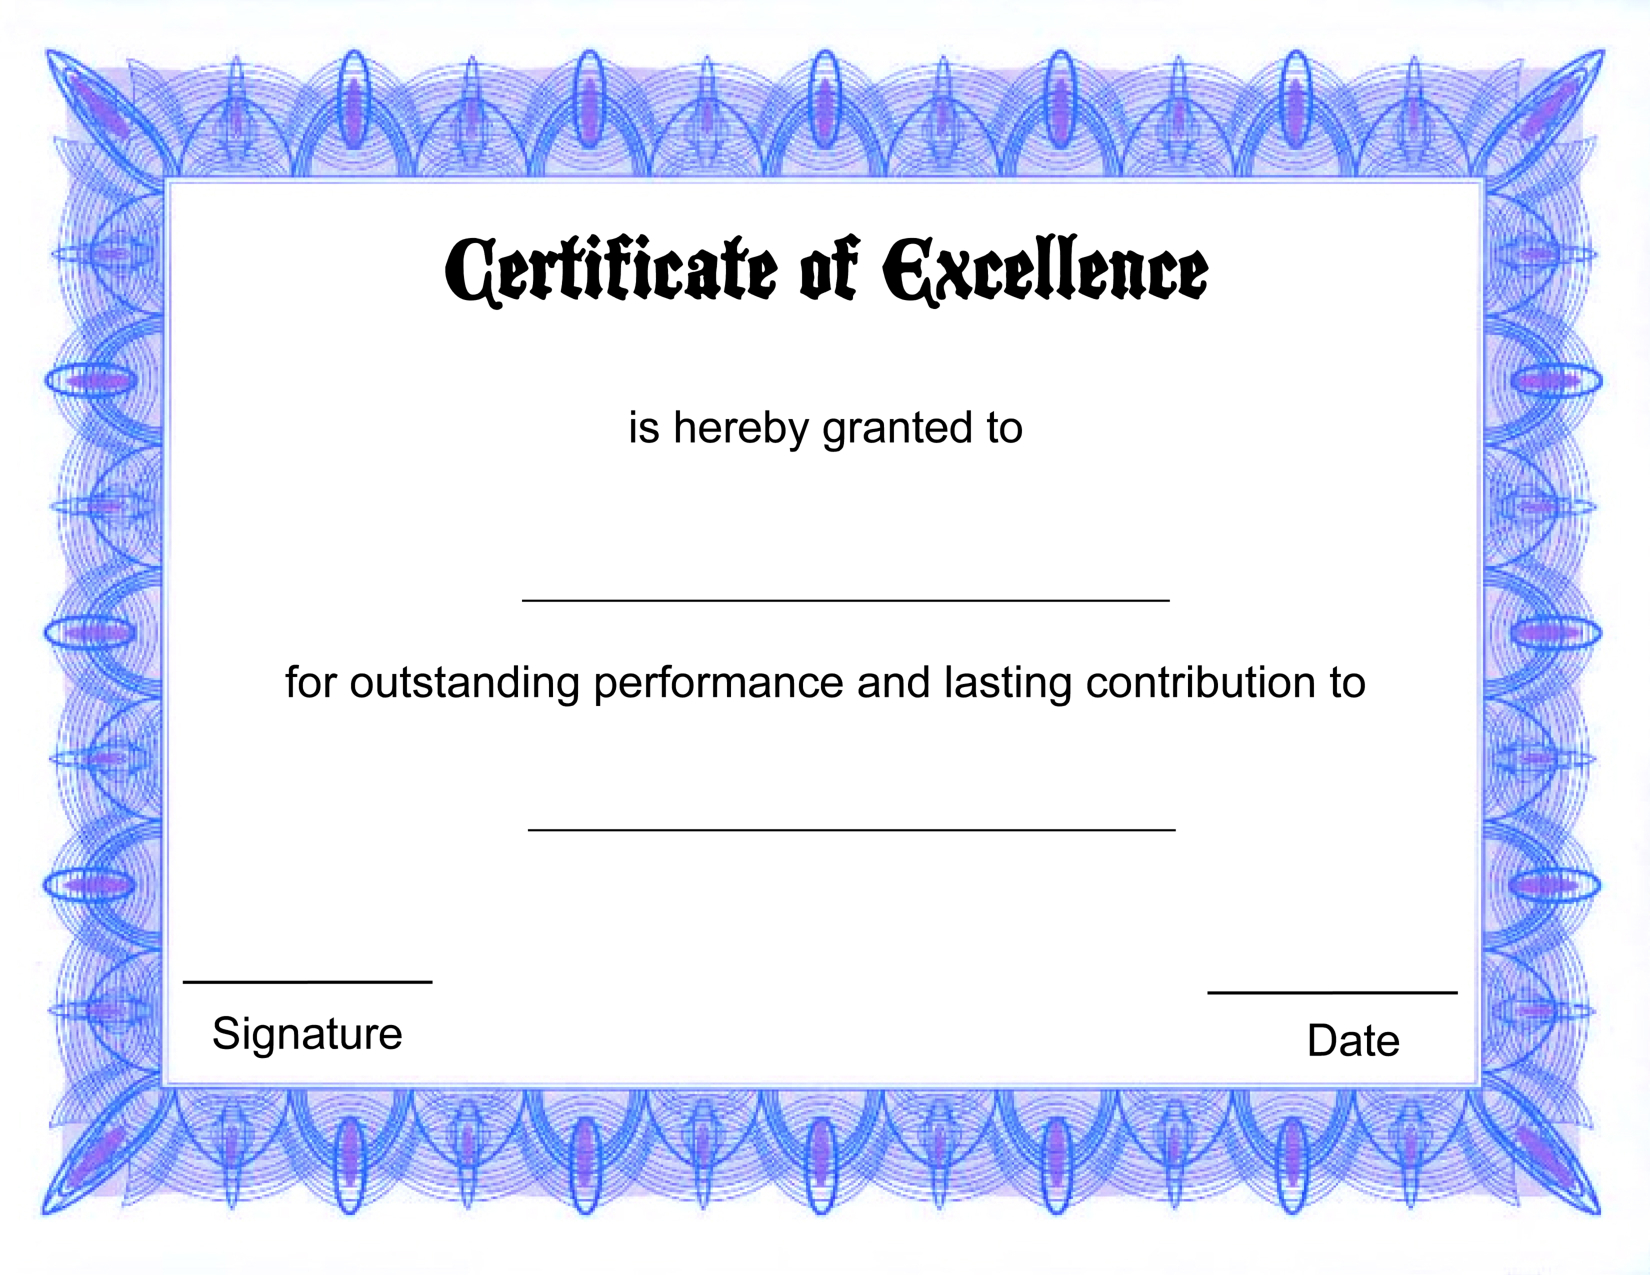 Blank Certificate Templates Of Excellence | Kiddo Shelter | Šįyyy - Free Printable Diploma Template